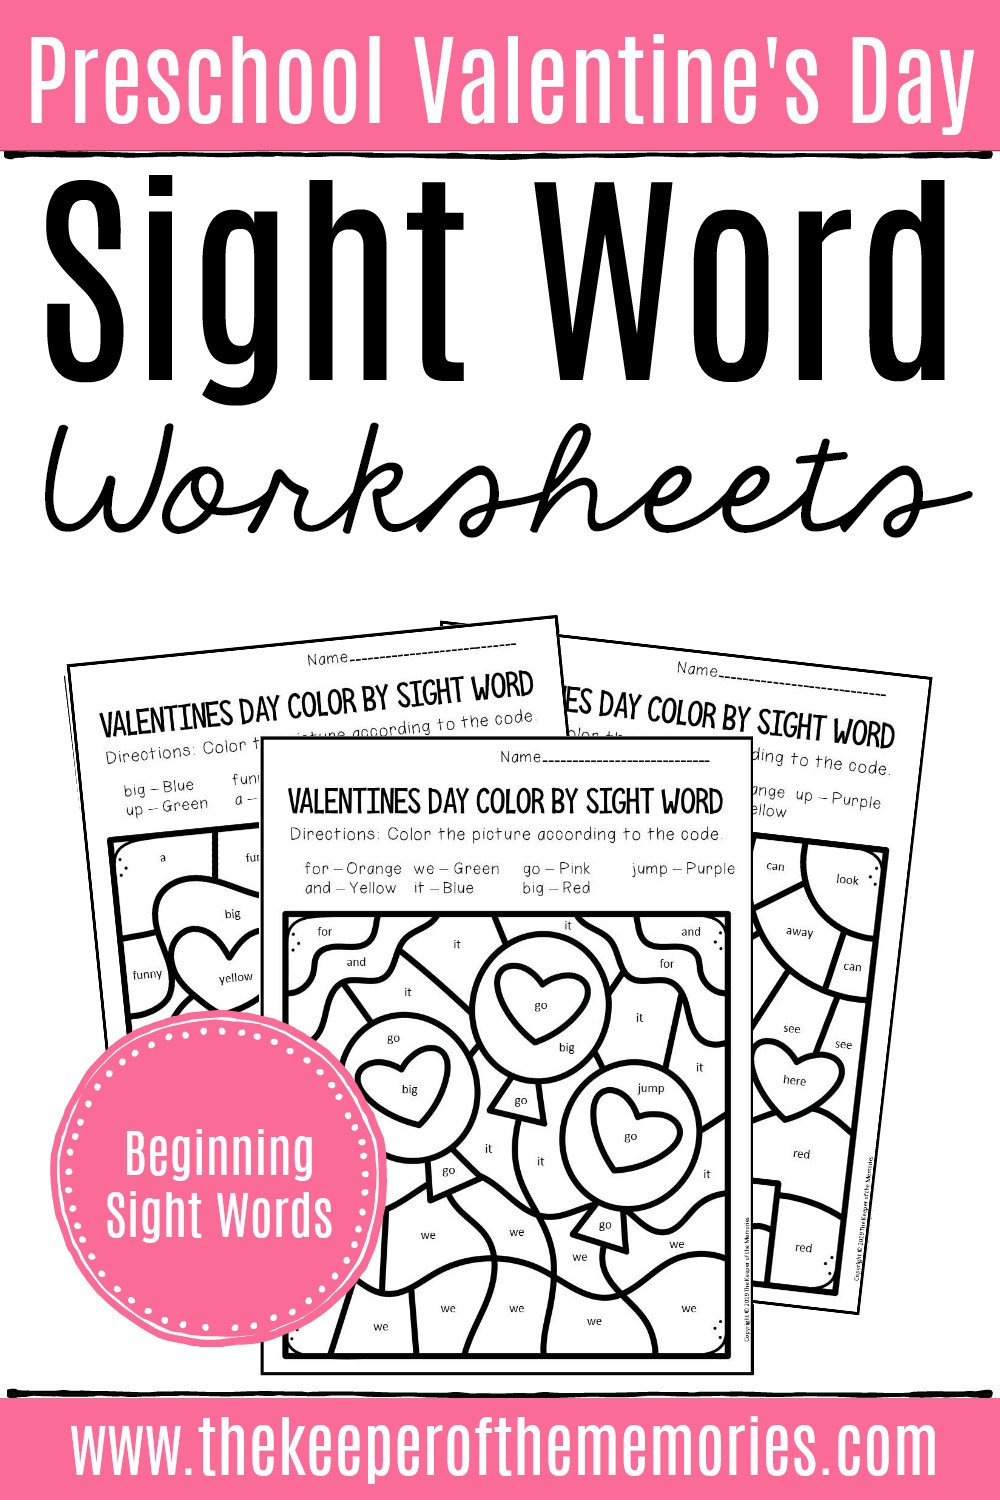 color by sight word valentines day preschool worksheets coloring pages pdf printable free